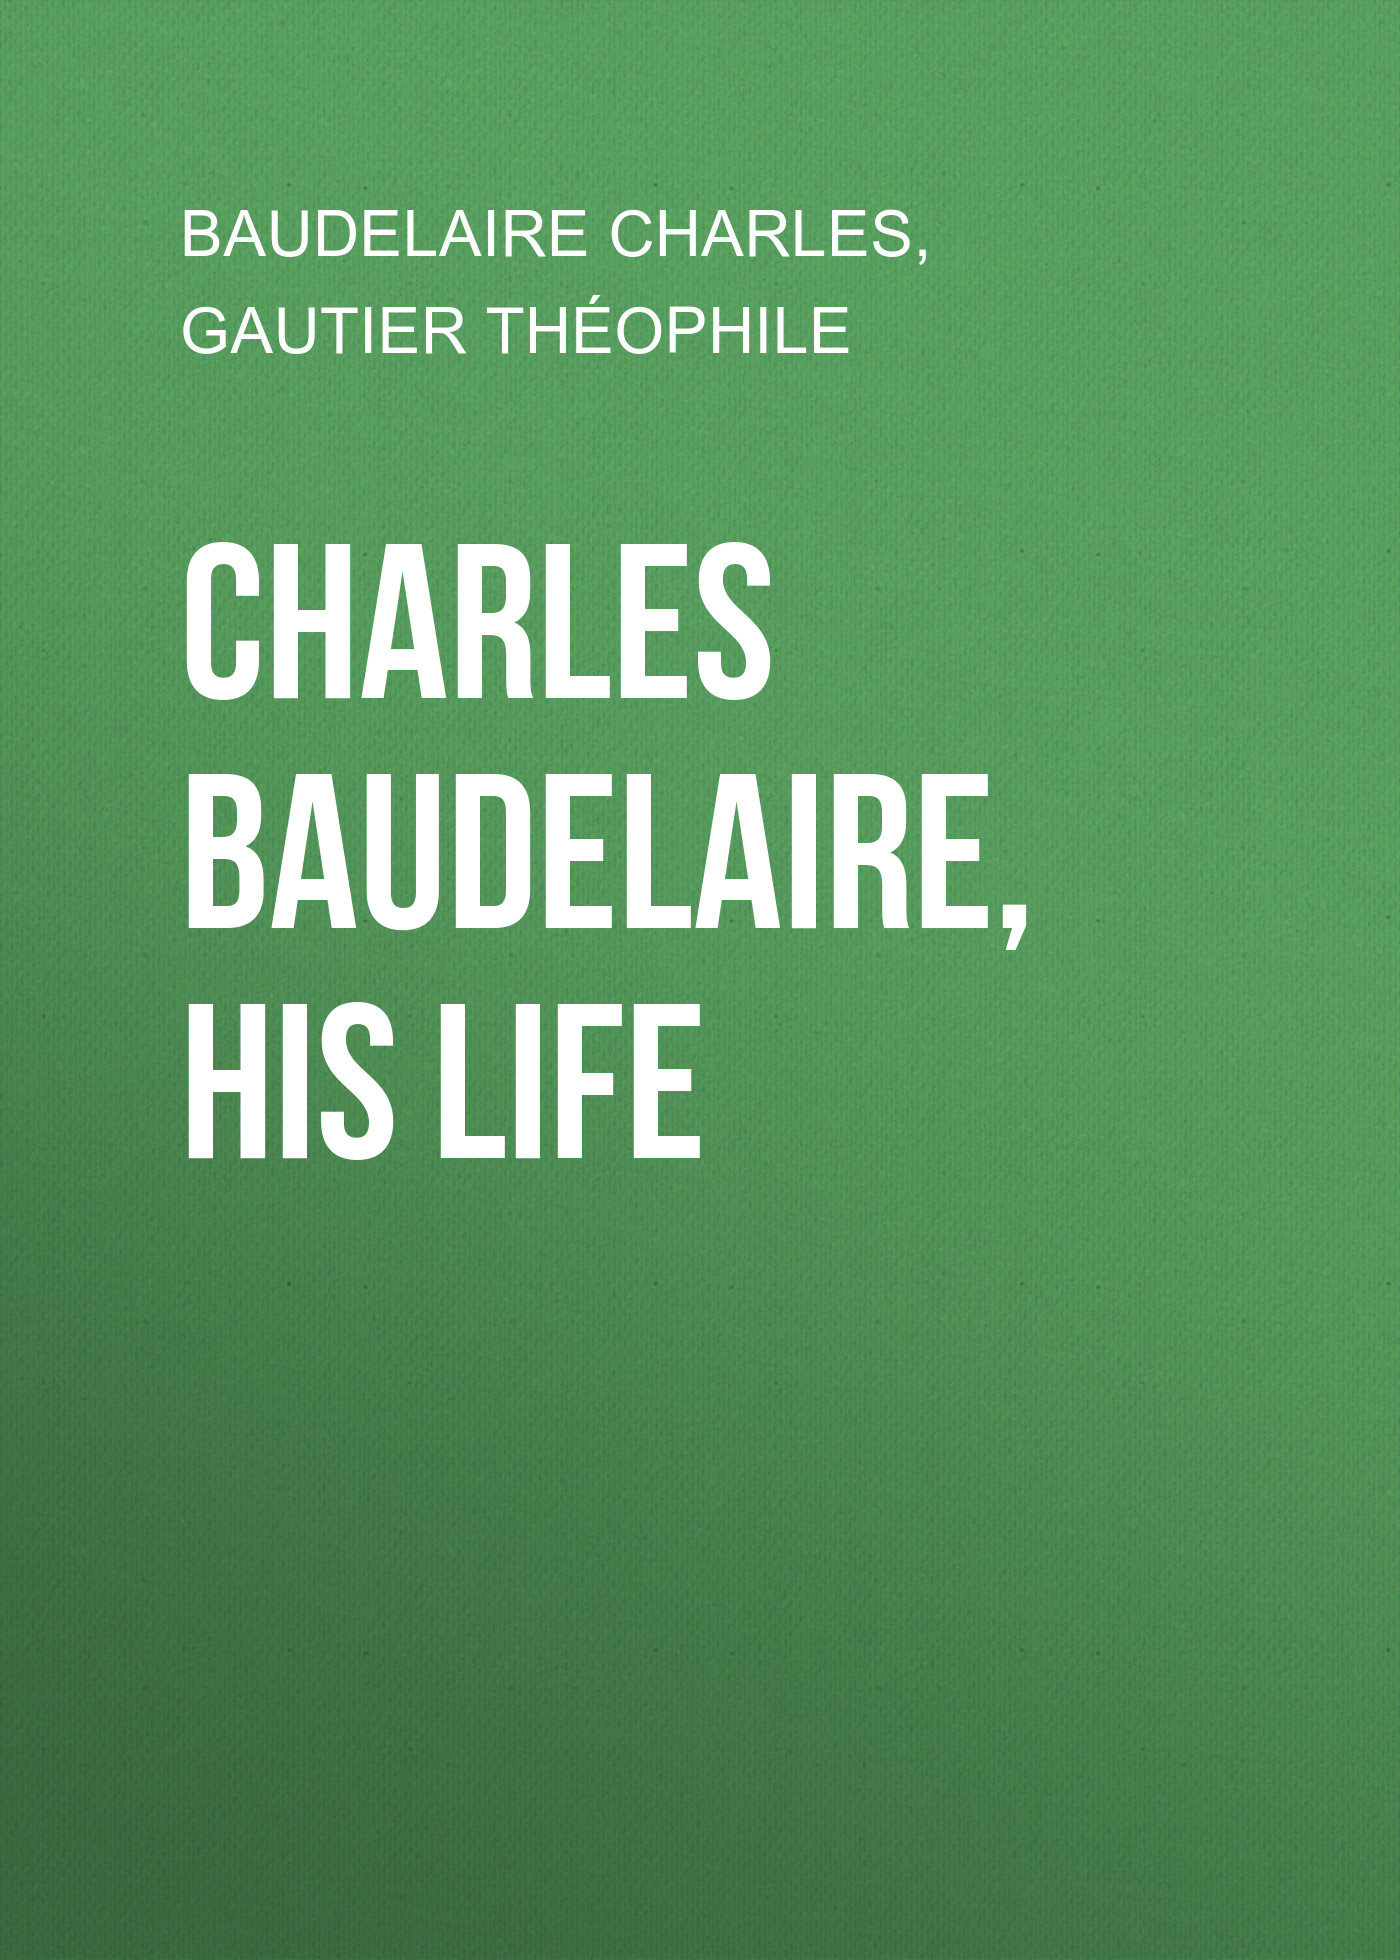 Baudelaire Charles Charles Baudelaire, His Life baudelaire charles the poems and prose poems of charles baudelaire